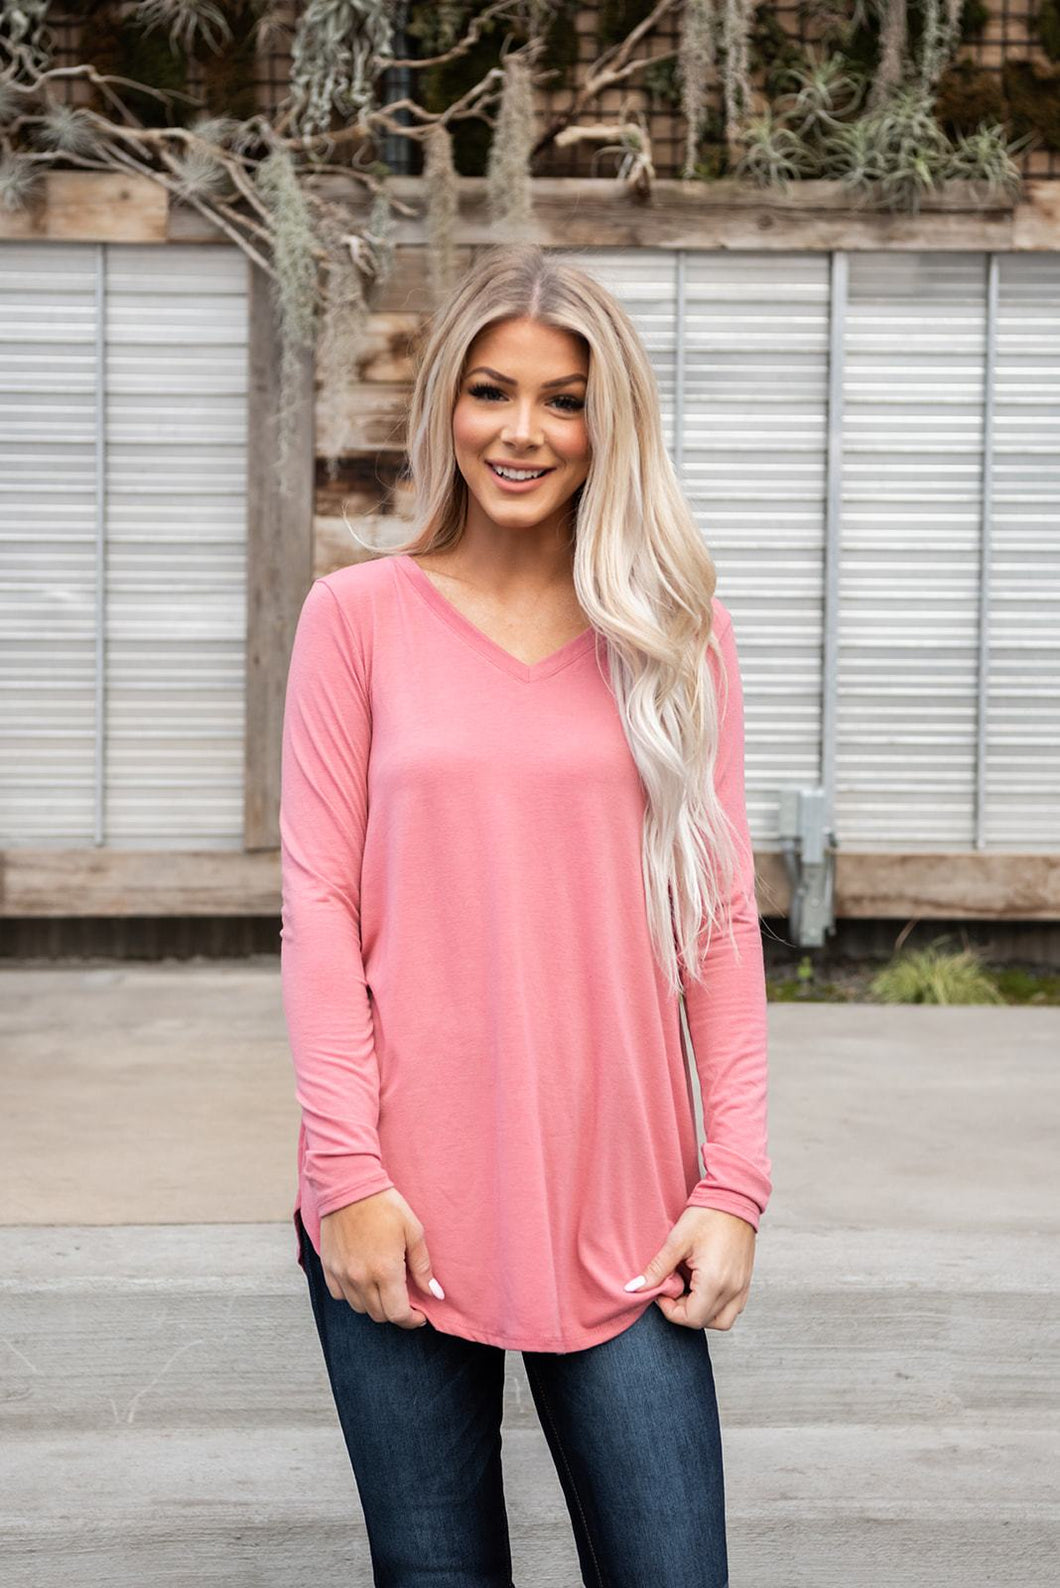 Simple As That Tee - Dusty Rose